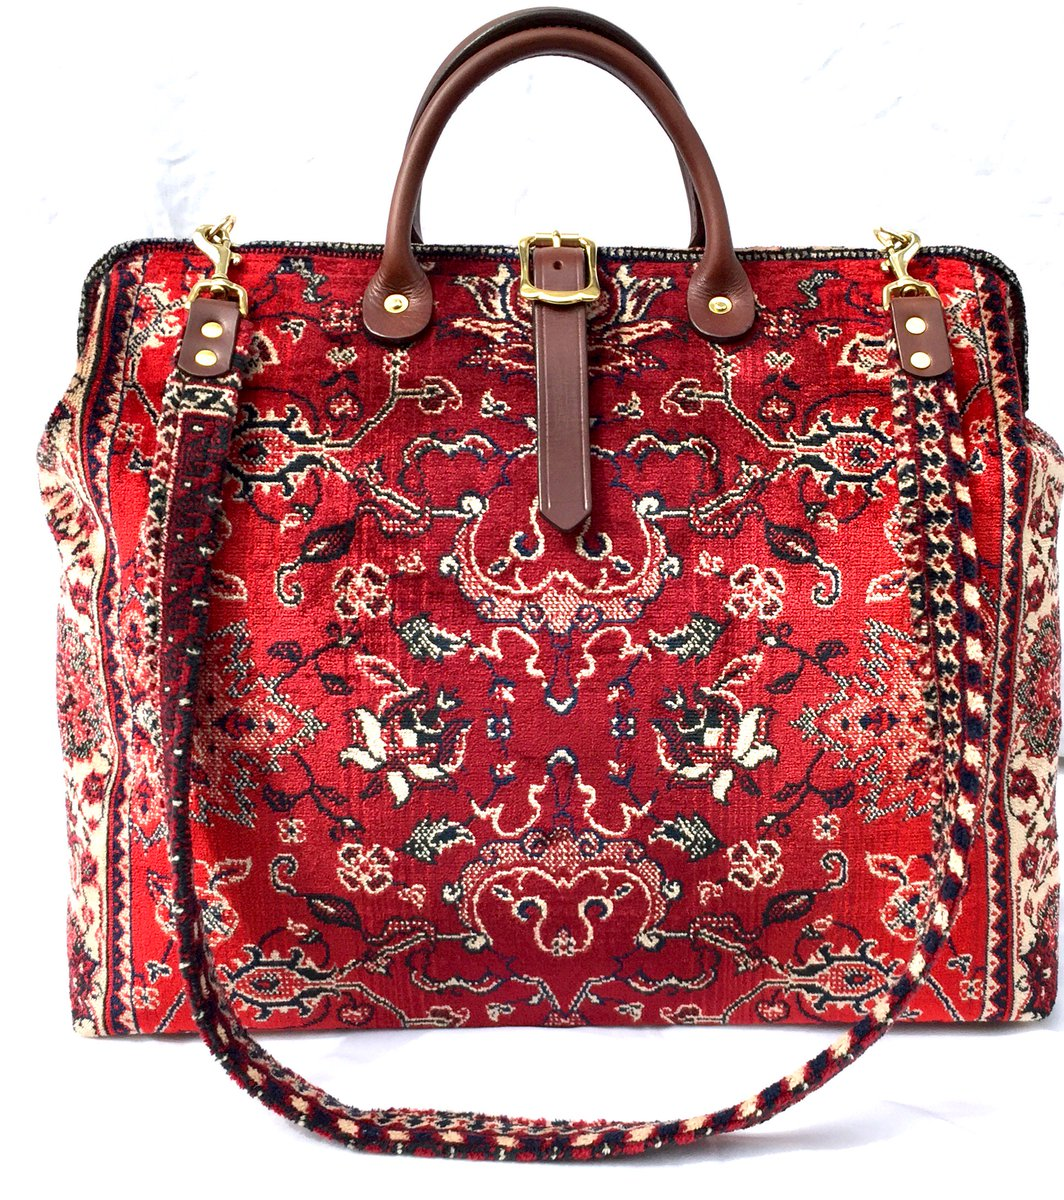 Have you seen the Carpet and Leather #Travel Bags from @CarpetBagsUK yet? #Bags #Holidays <br>http://pic.twitter.com/ljfrQcij8D &gt;&gt;  http:// carpetbagsofengland.co.uk  &nbsp;